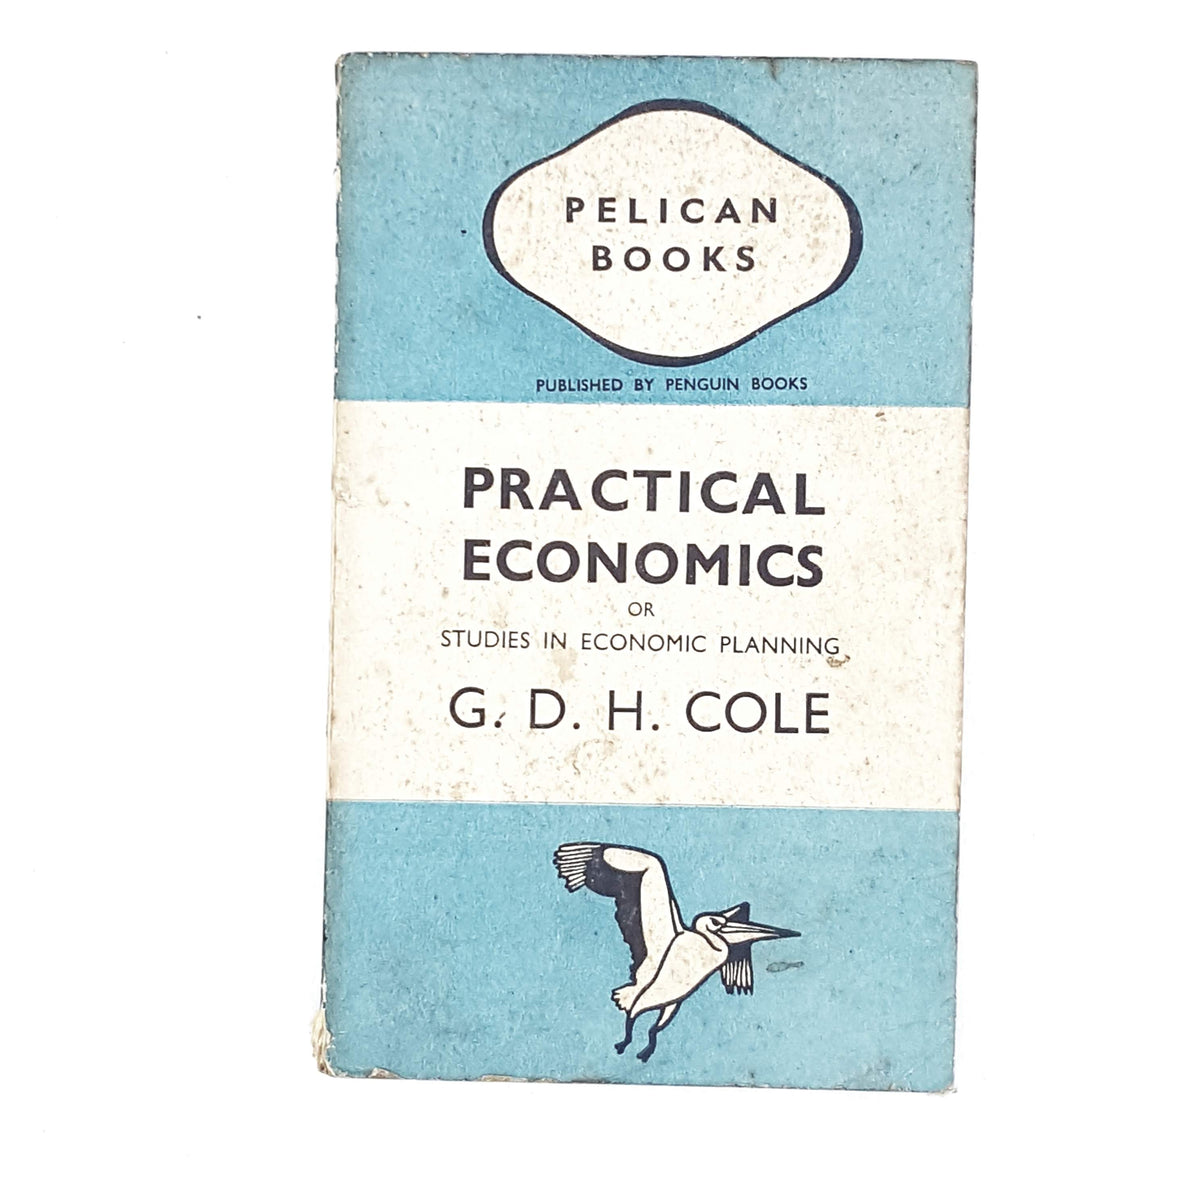 Practical Economics by G. D. H. Cole 1941